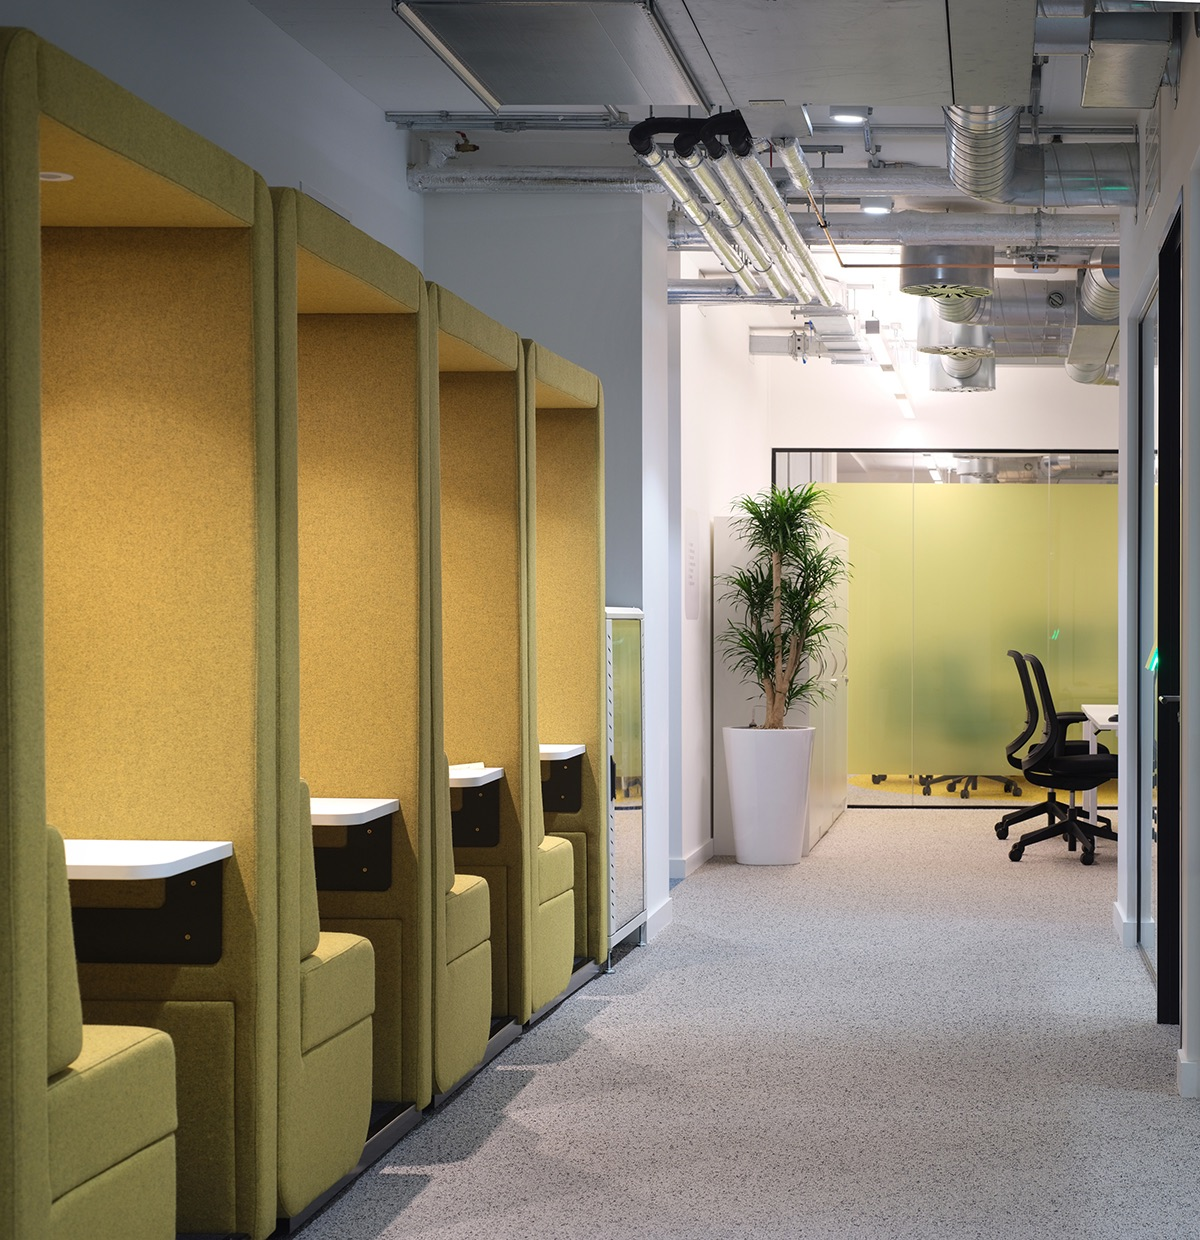 sage-publishing-london-office-10